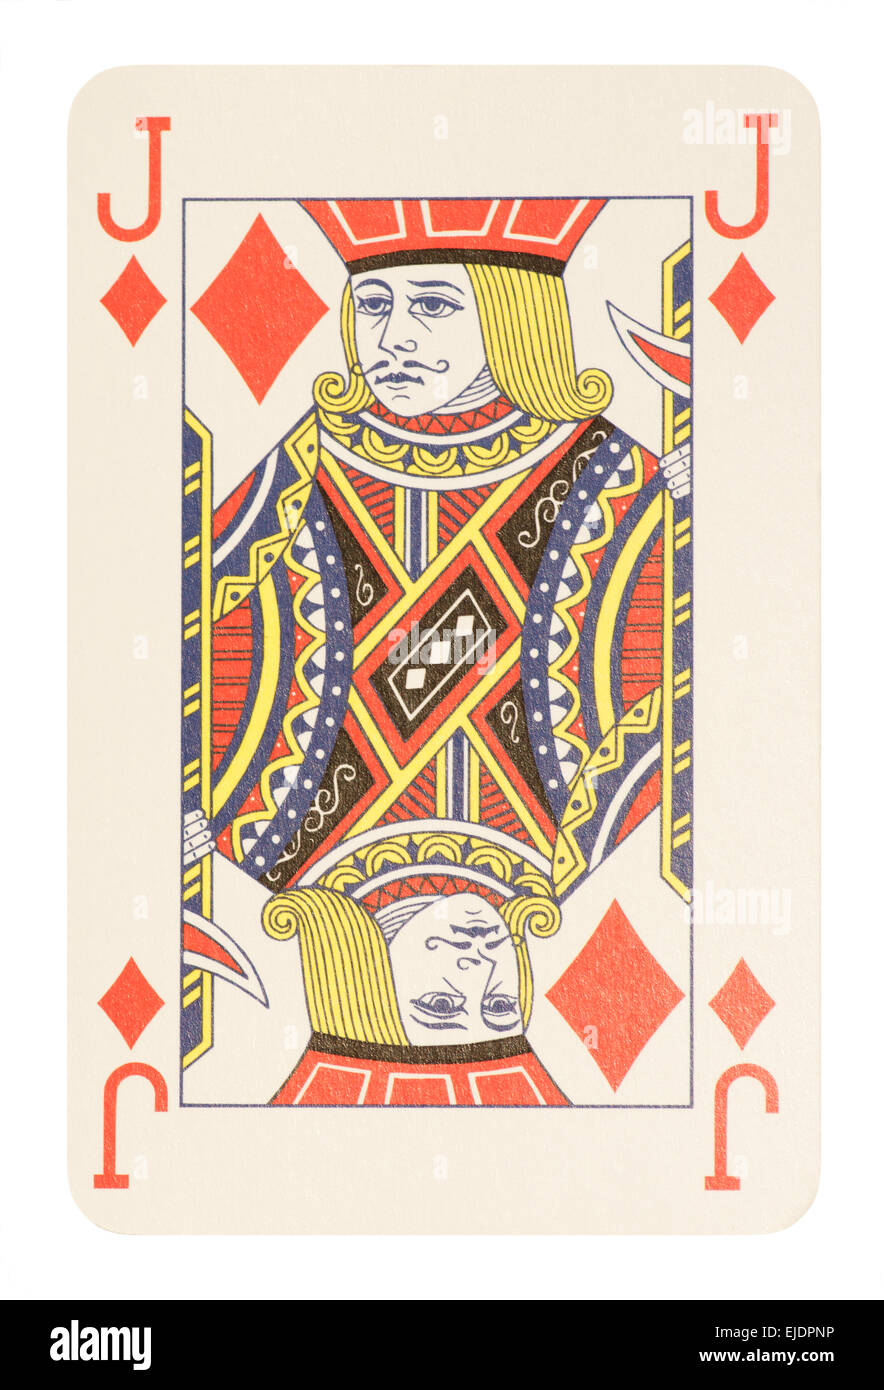 Jack Playing Cards